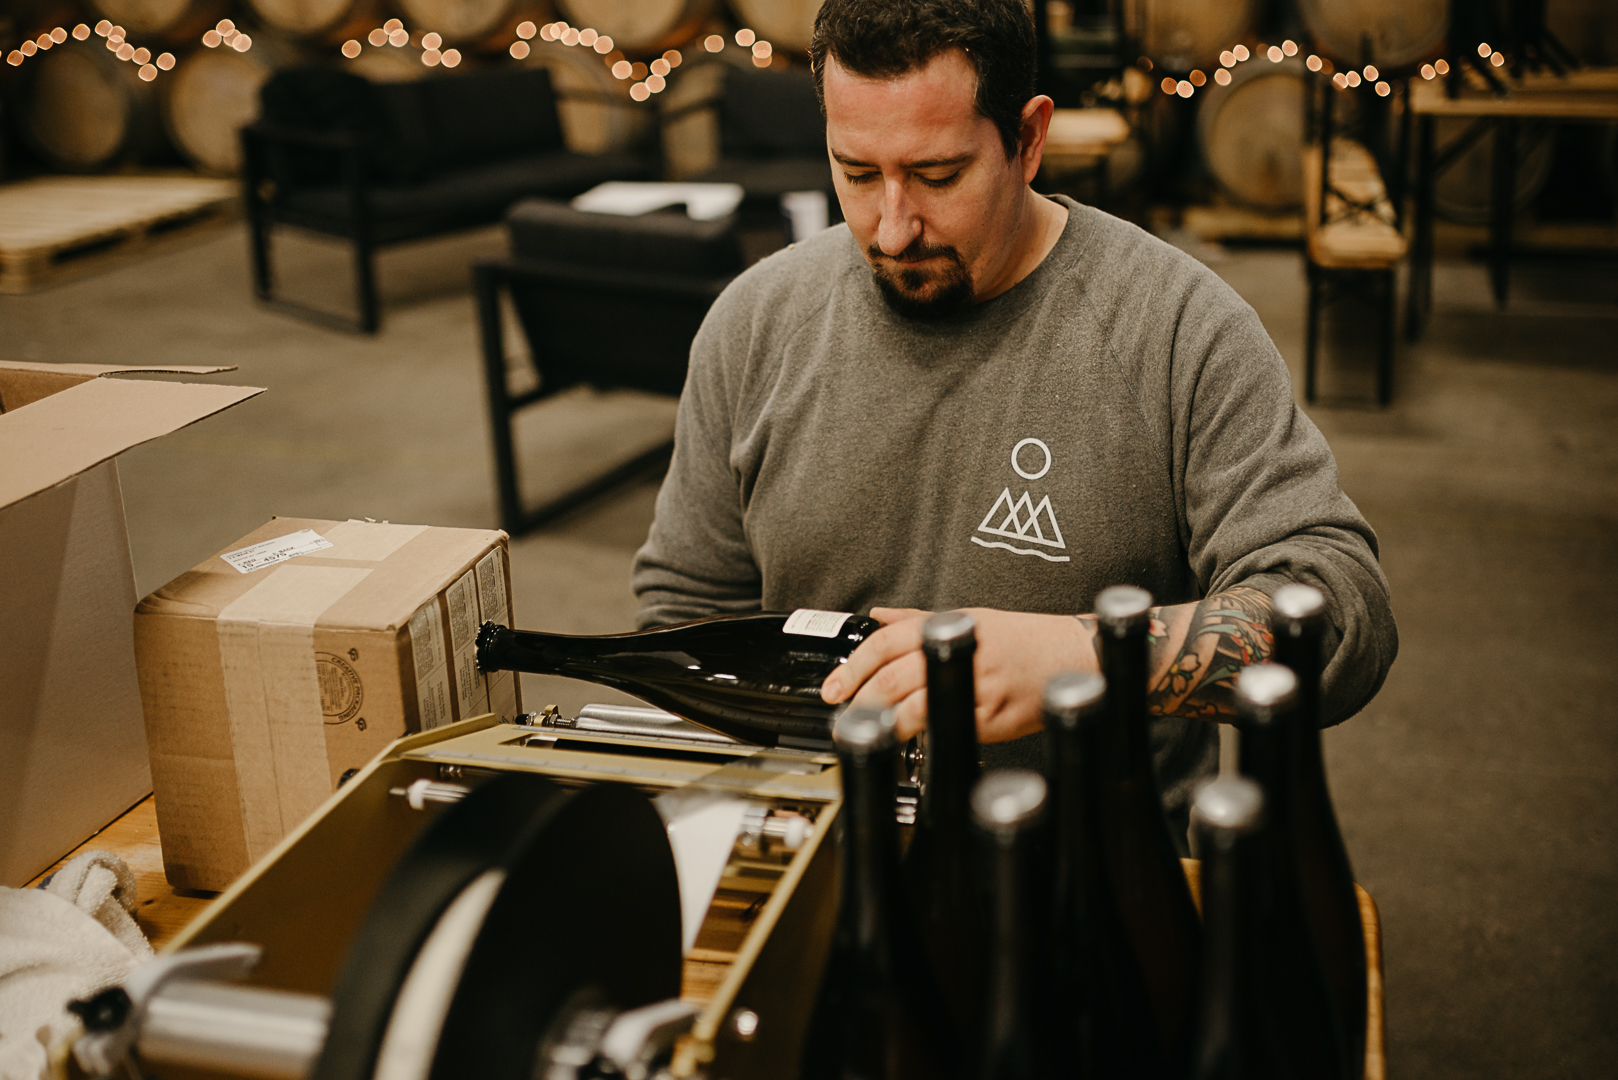 Photo of Josh labeling the most recent bottles of Valley Beer